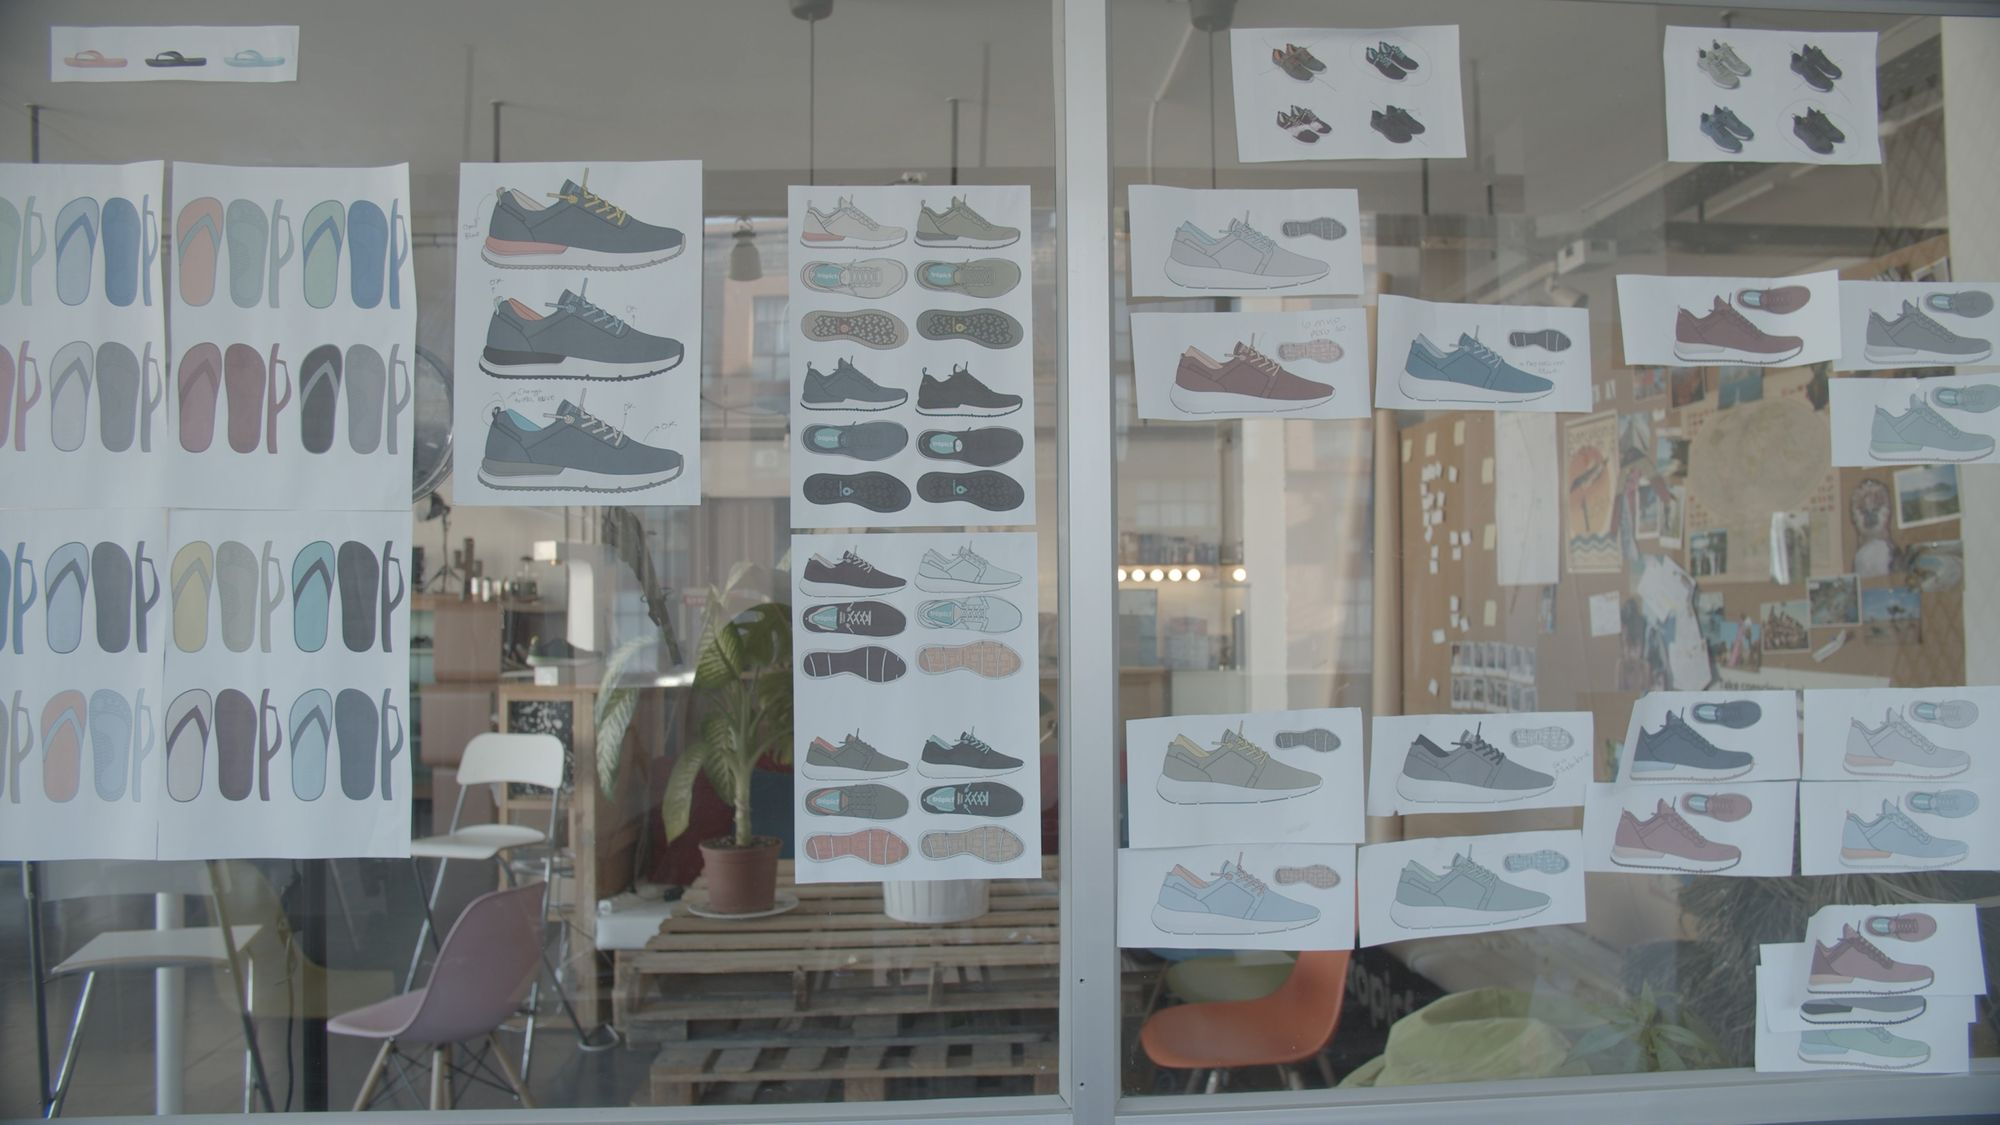 Tropicfeel sketching future shoes in their Barcelona Office